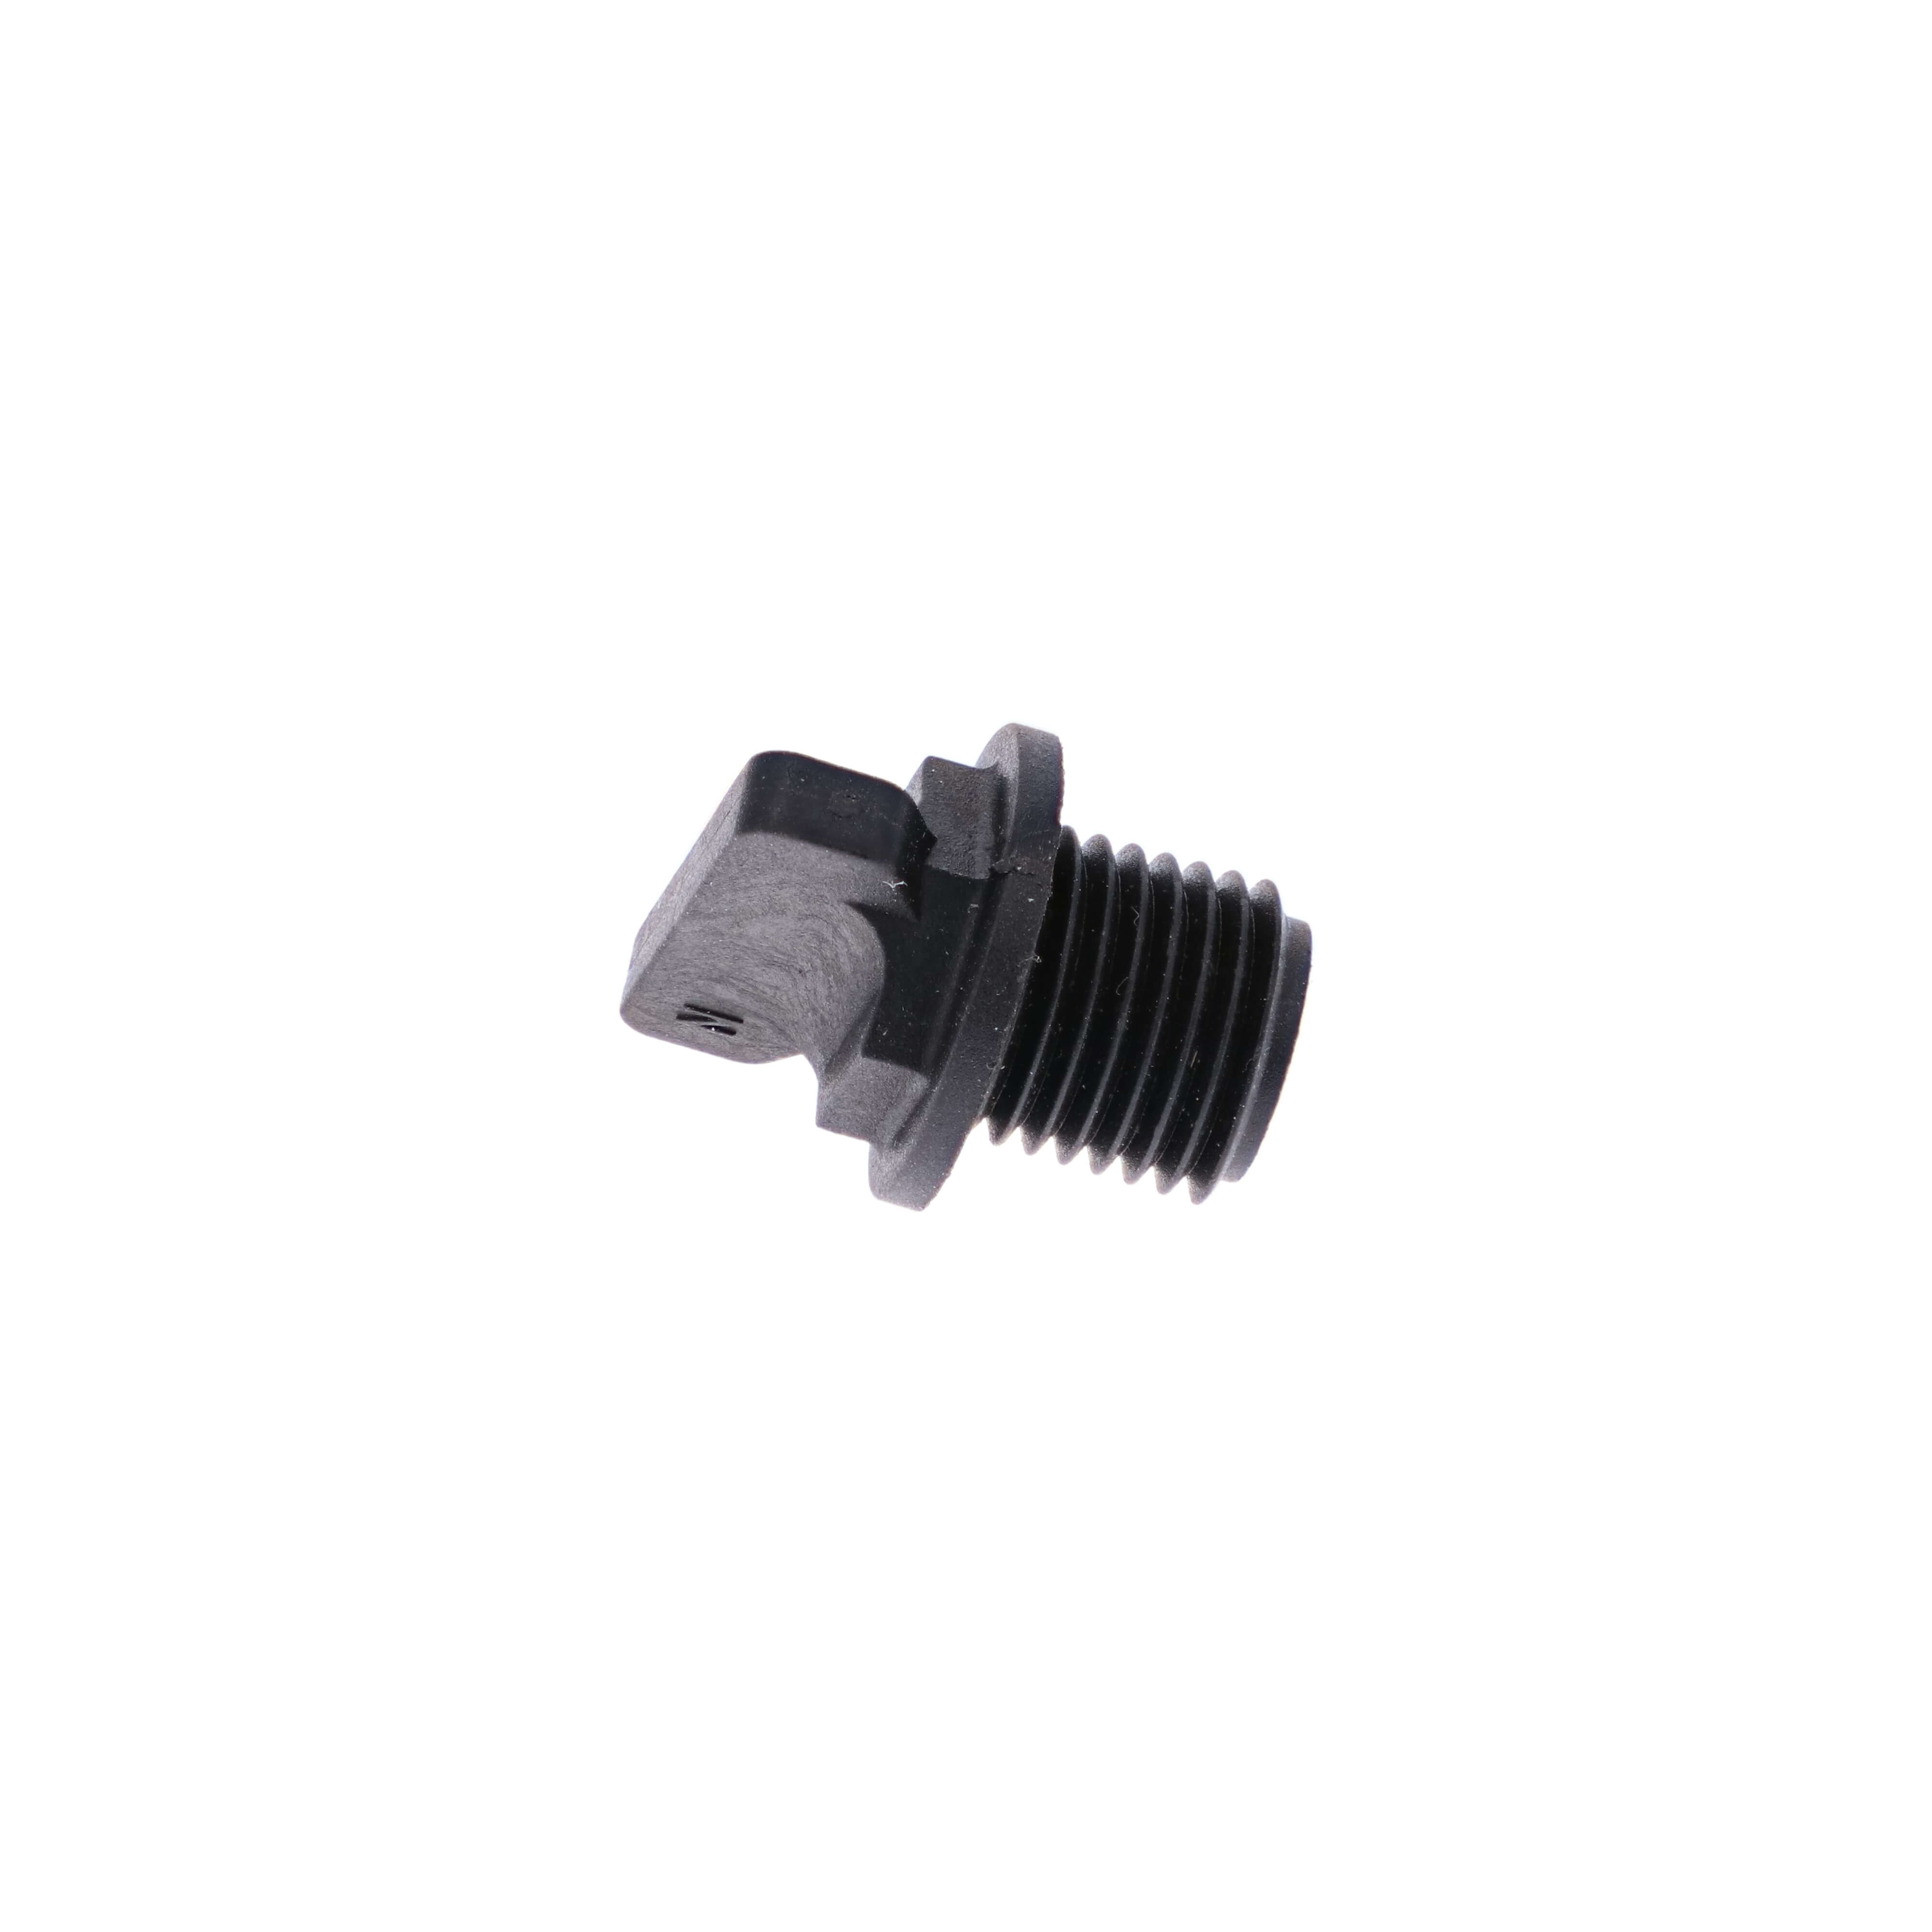 Drain plug A29070002 for DXD and LX pumps